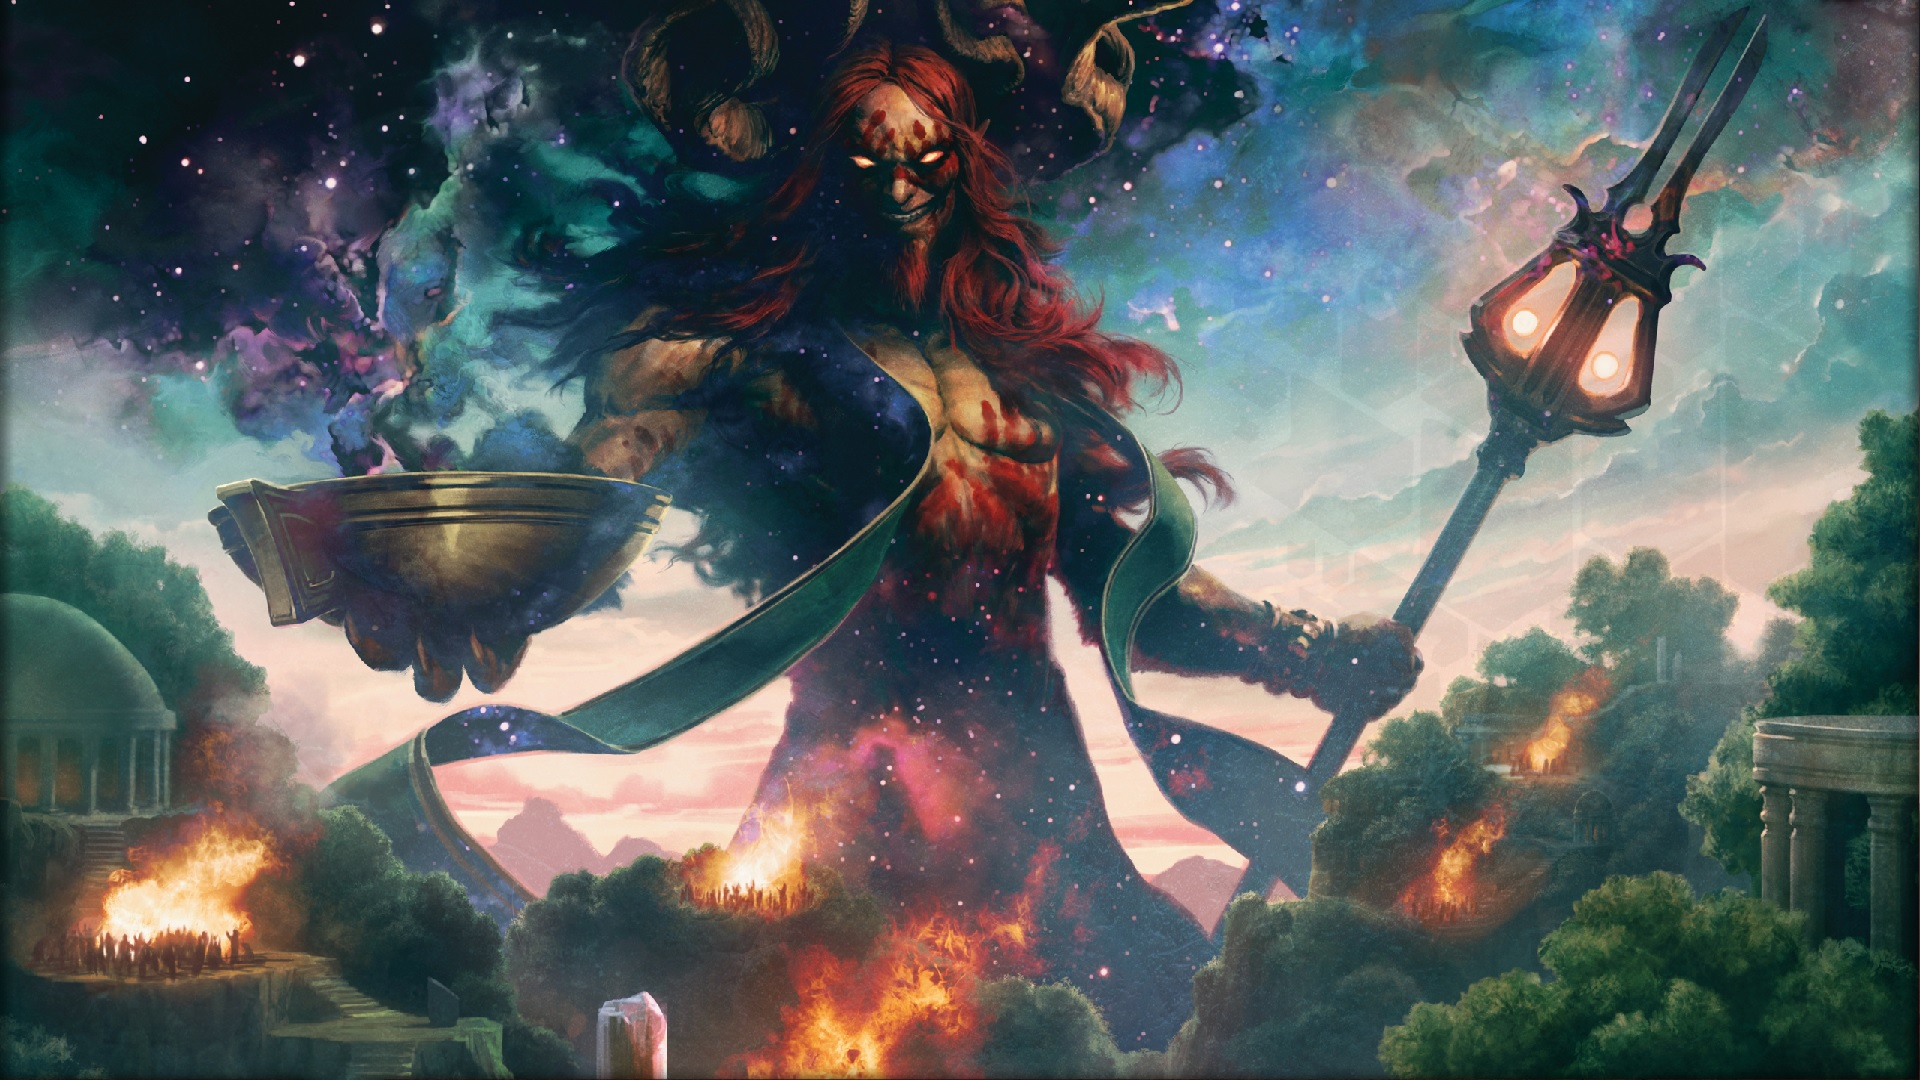 Magic: The Gathering Full HD Wallpaper 1920x1080